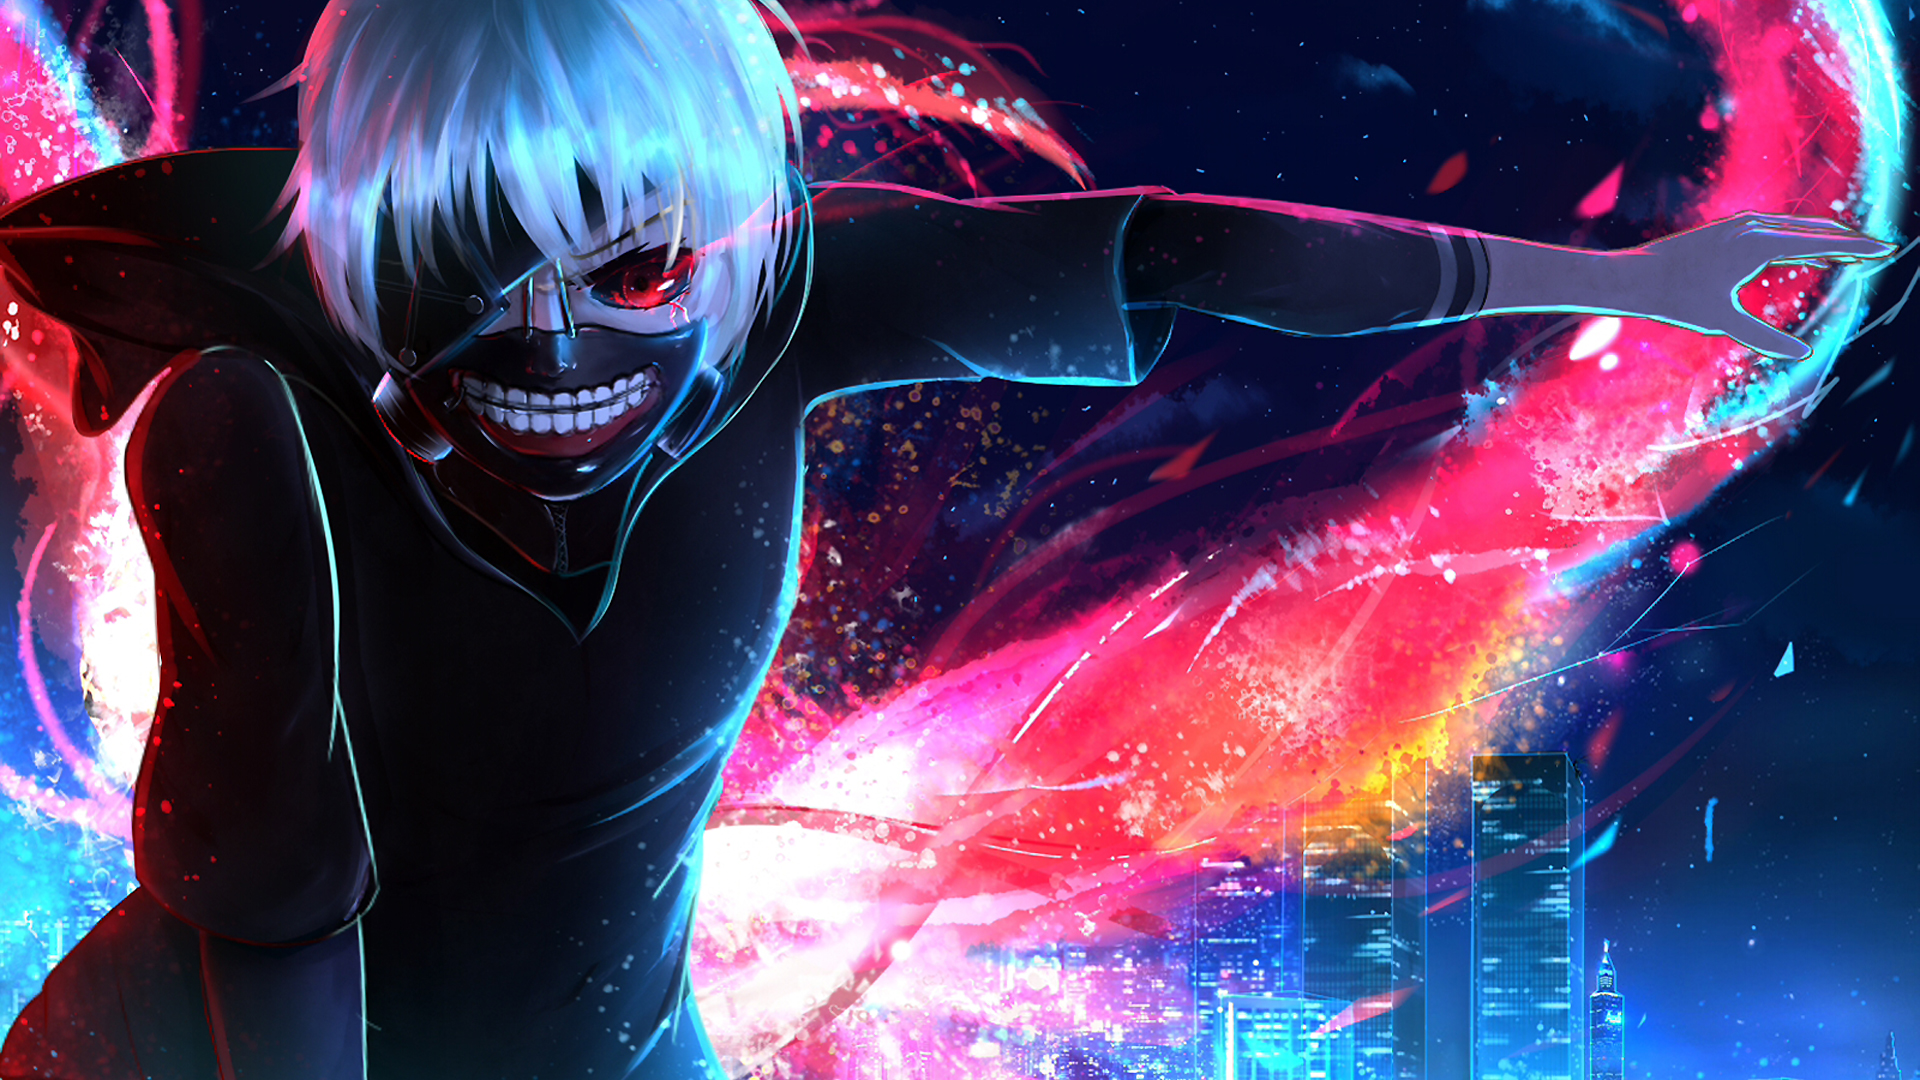 Ken Kaneki From Tokyo Ghoul Anime Wallpaper Full Hd Id4028